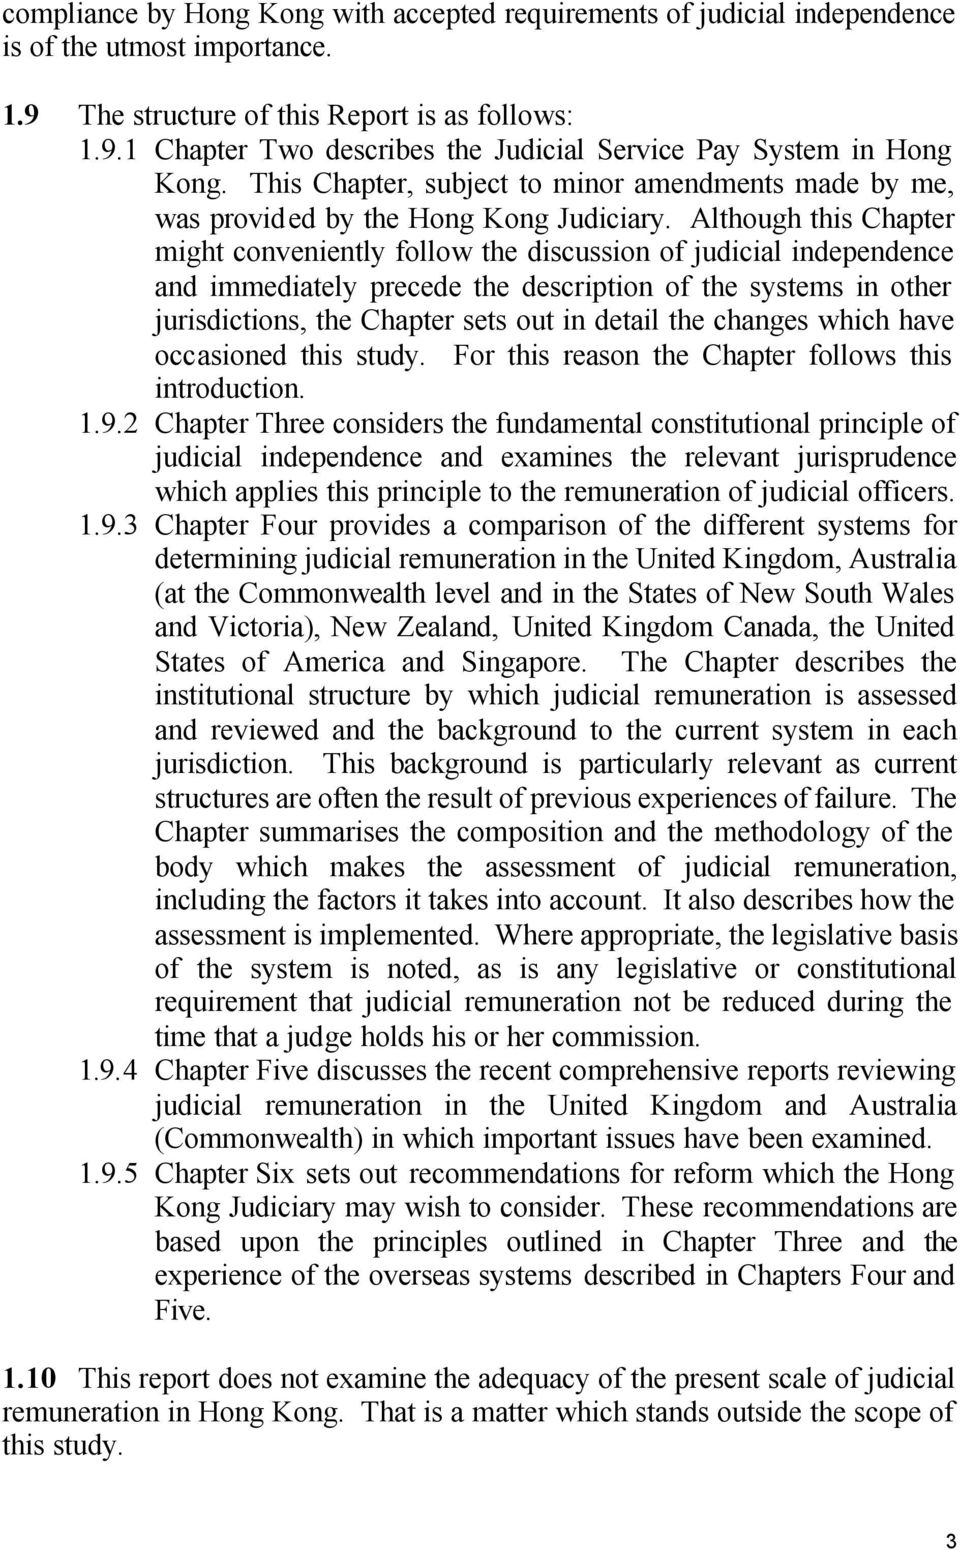 Although this Chapter might conveniently follow the discussion of judicial independence and immediately precede the description of the systems in other jurisdictions, the Chapter sets out in detail